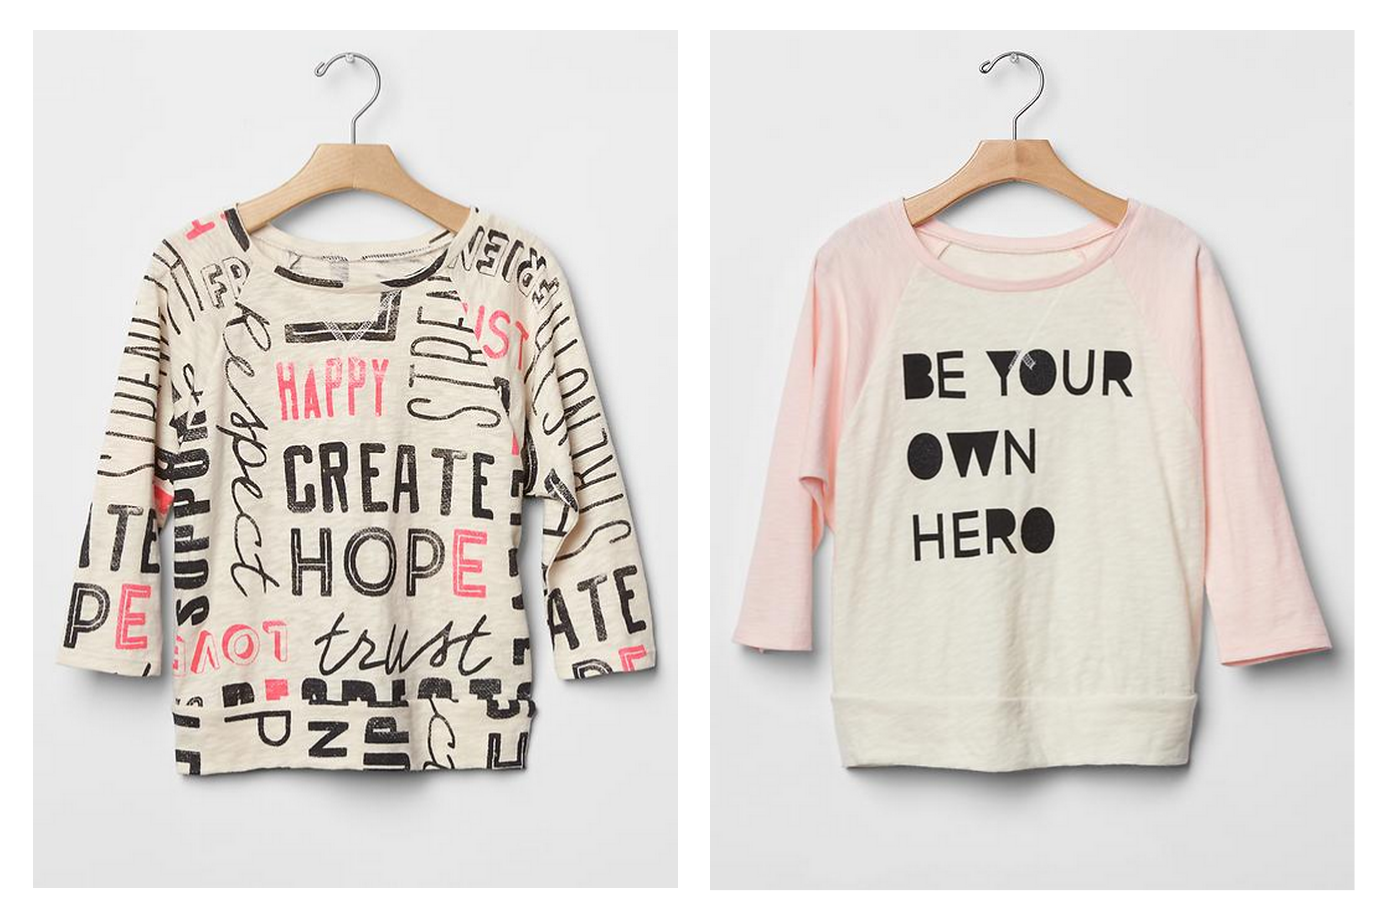 GapKids x ED clothing